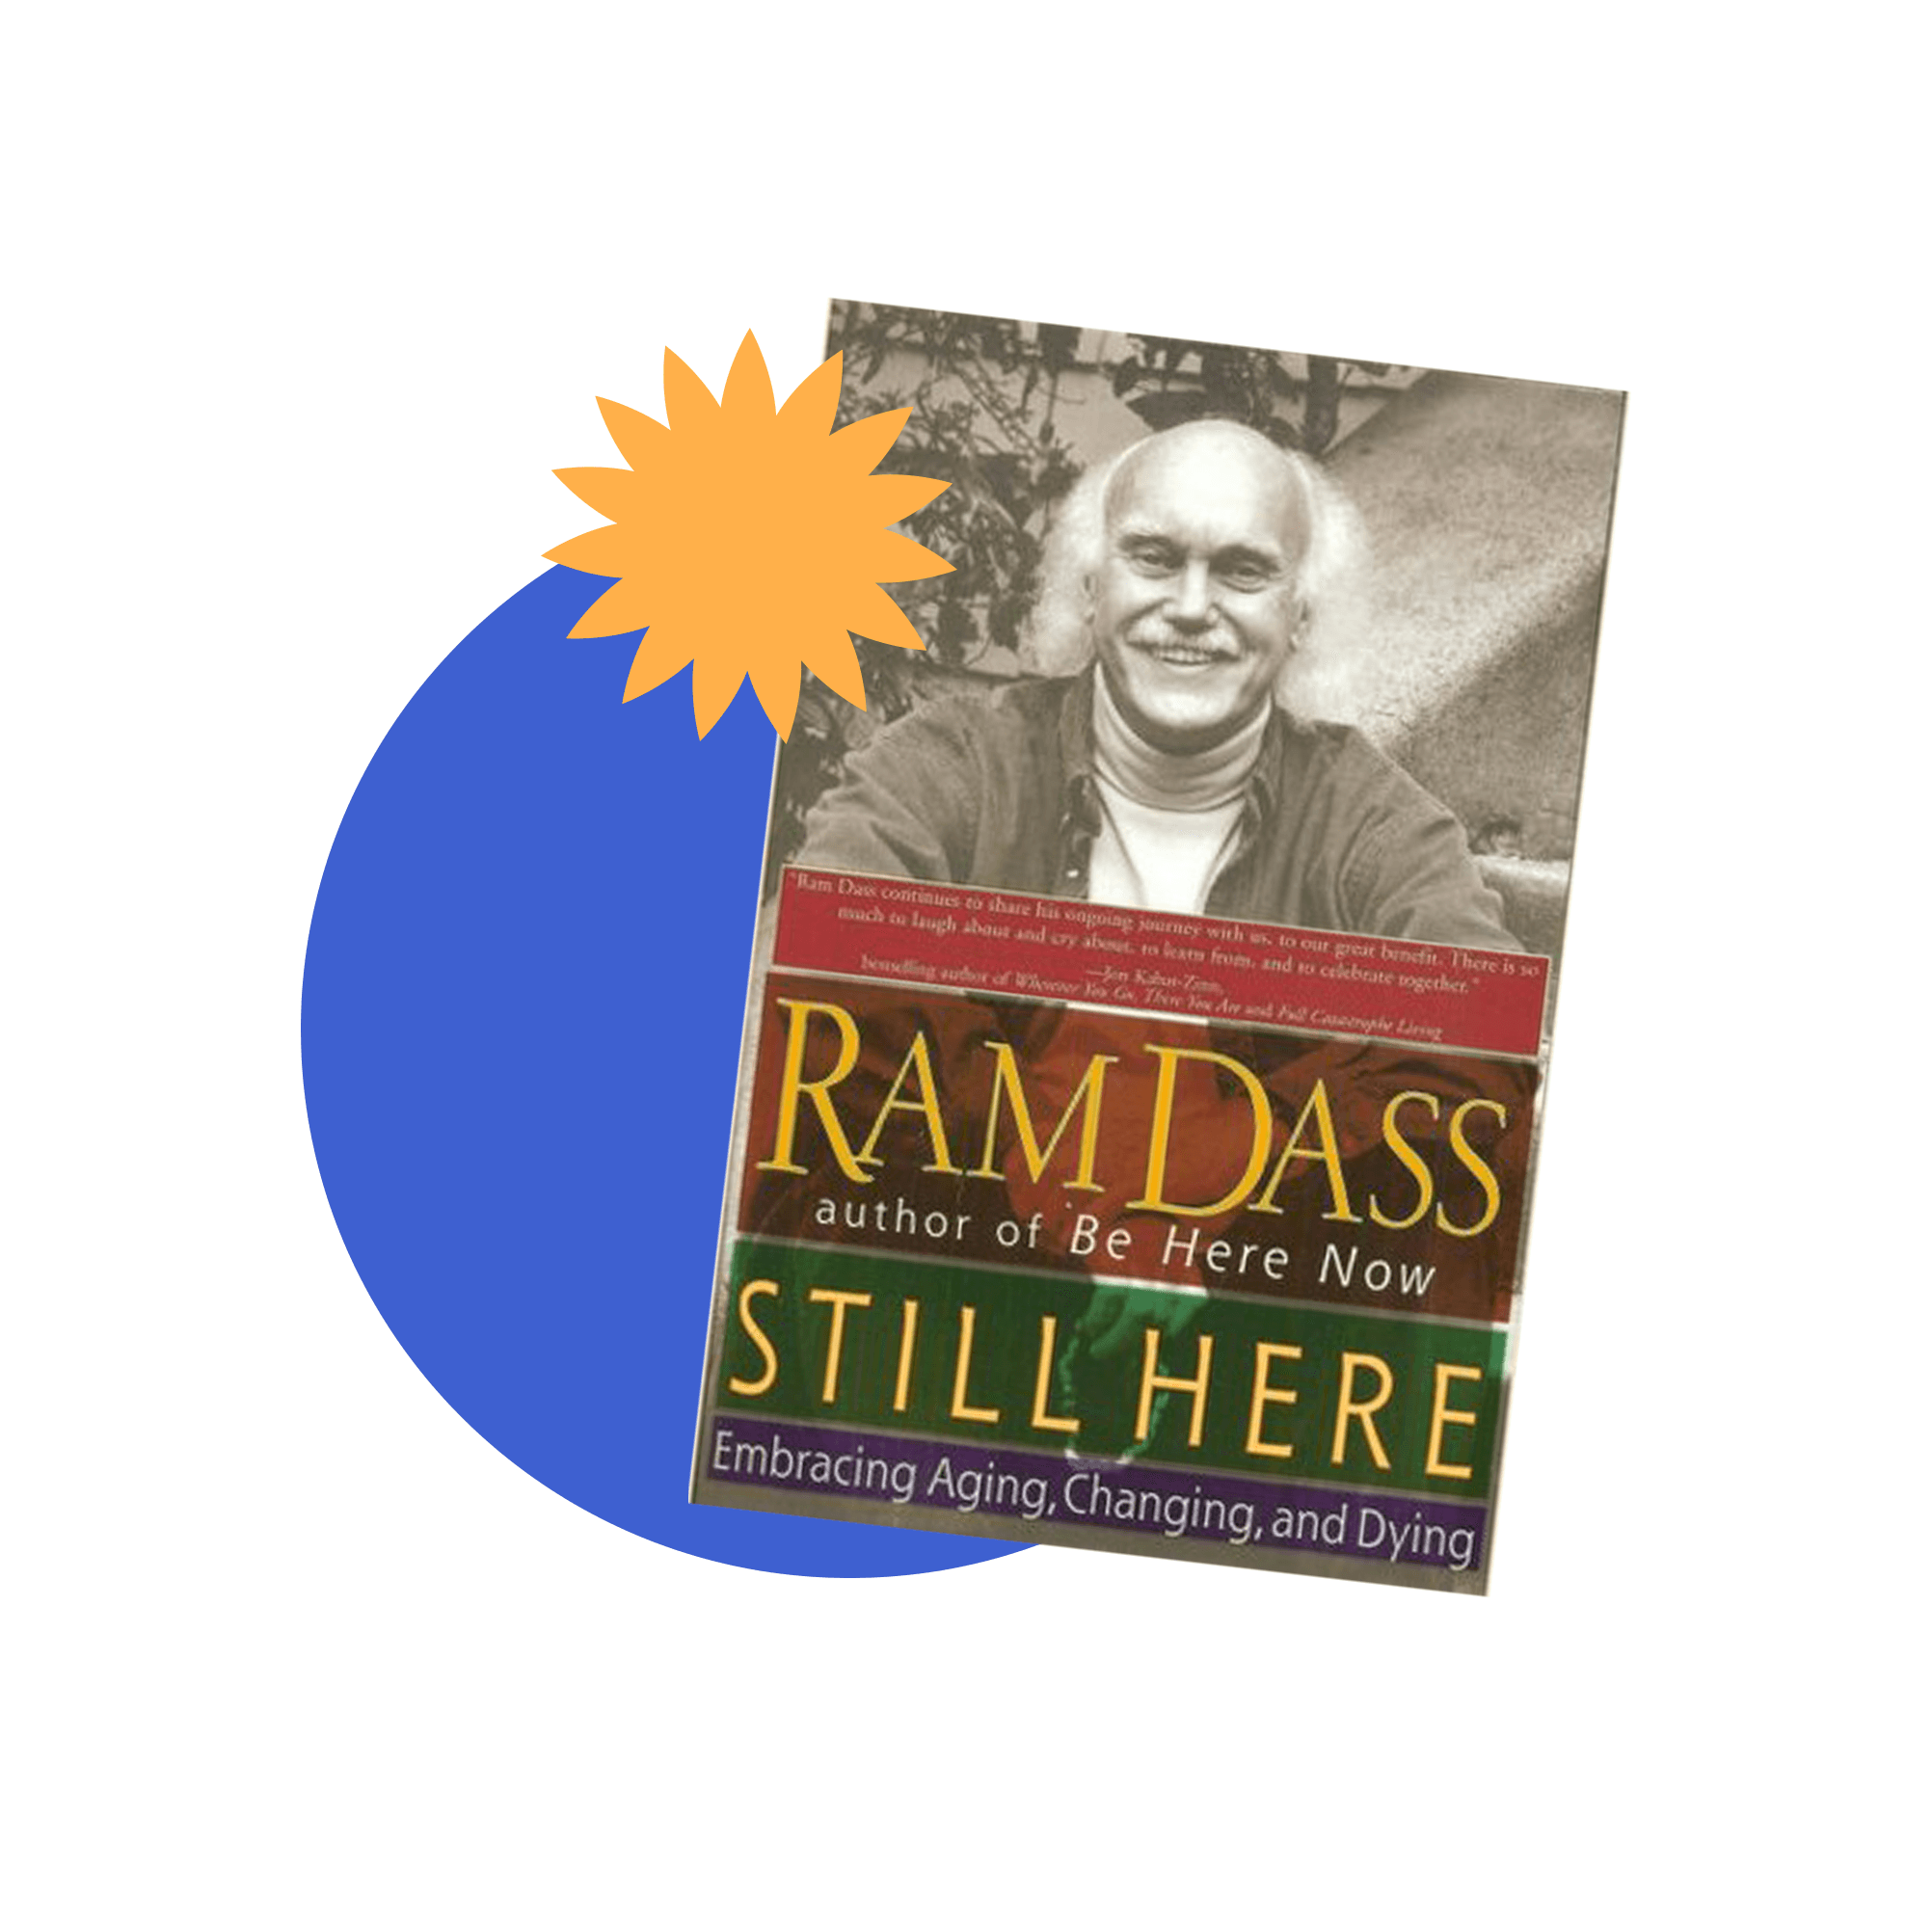 Book jacket cover for Still Here by Ram Dass